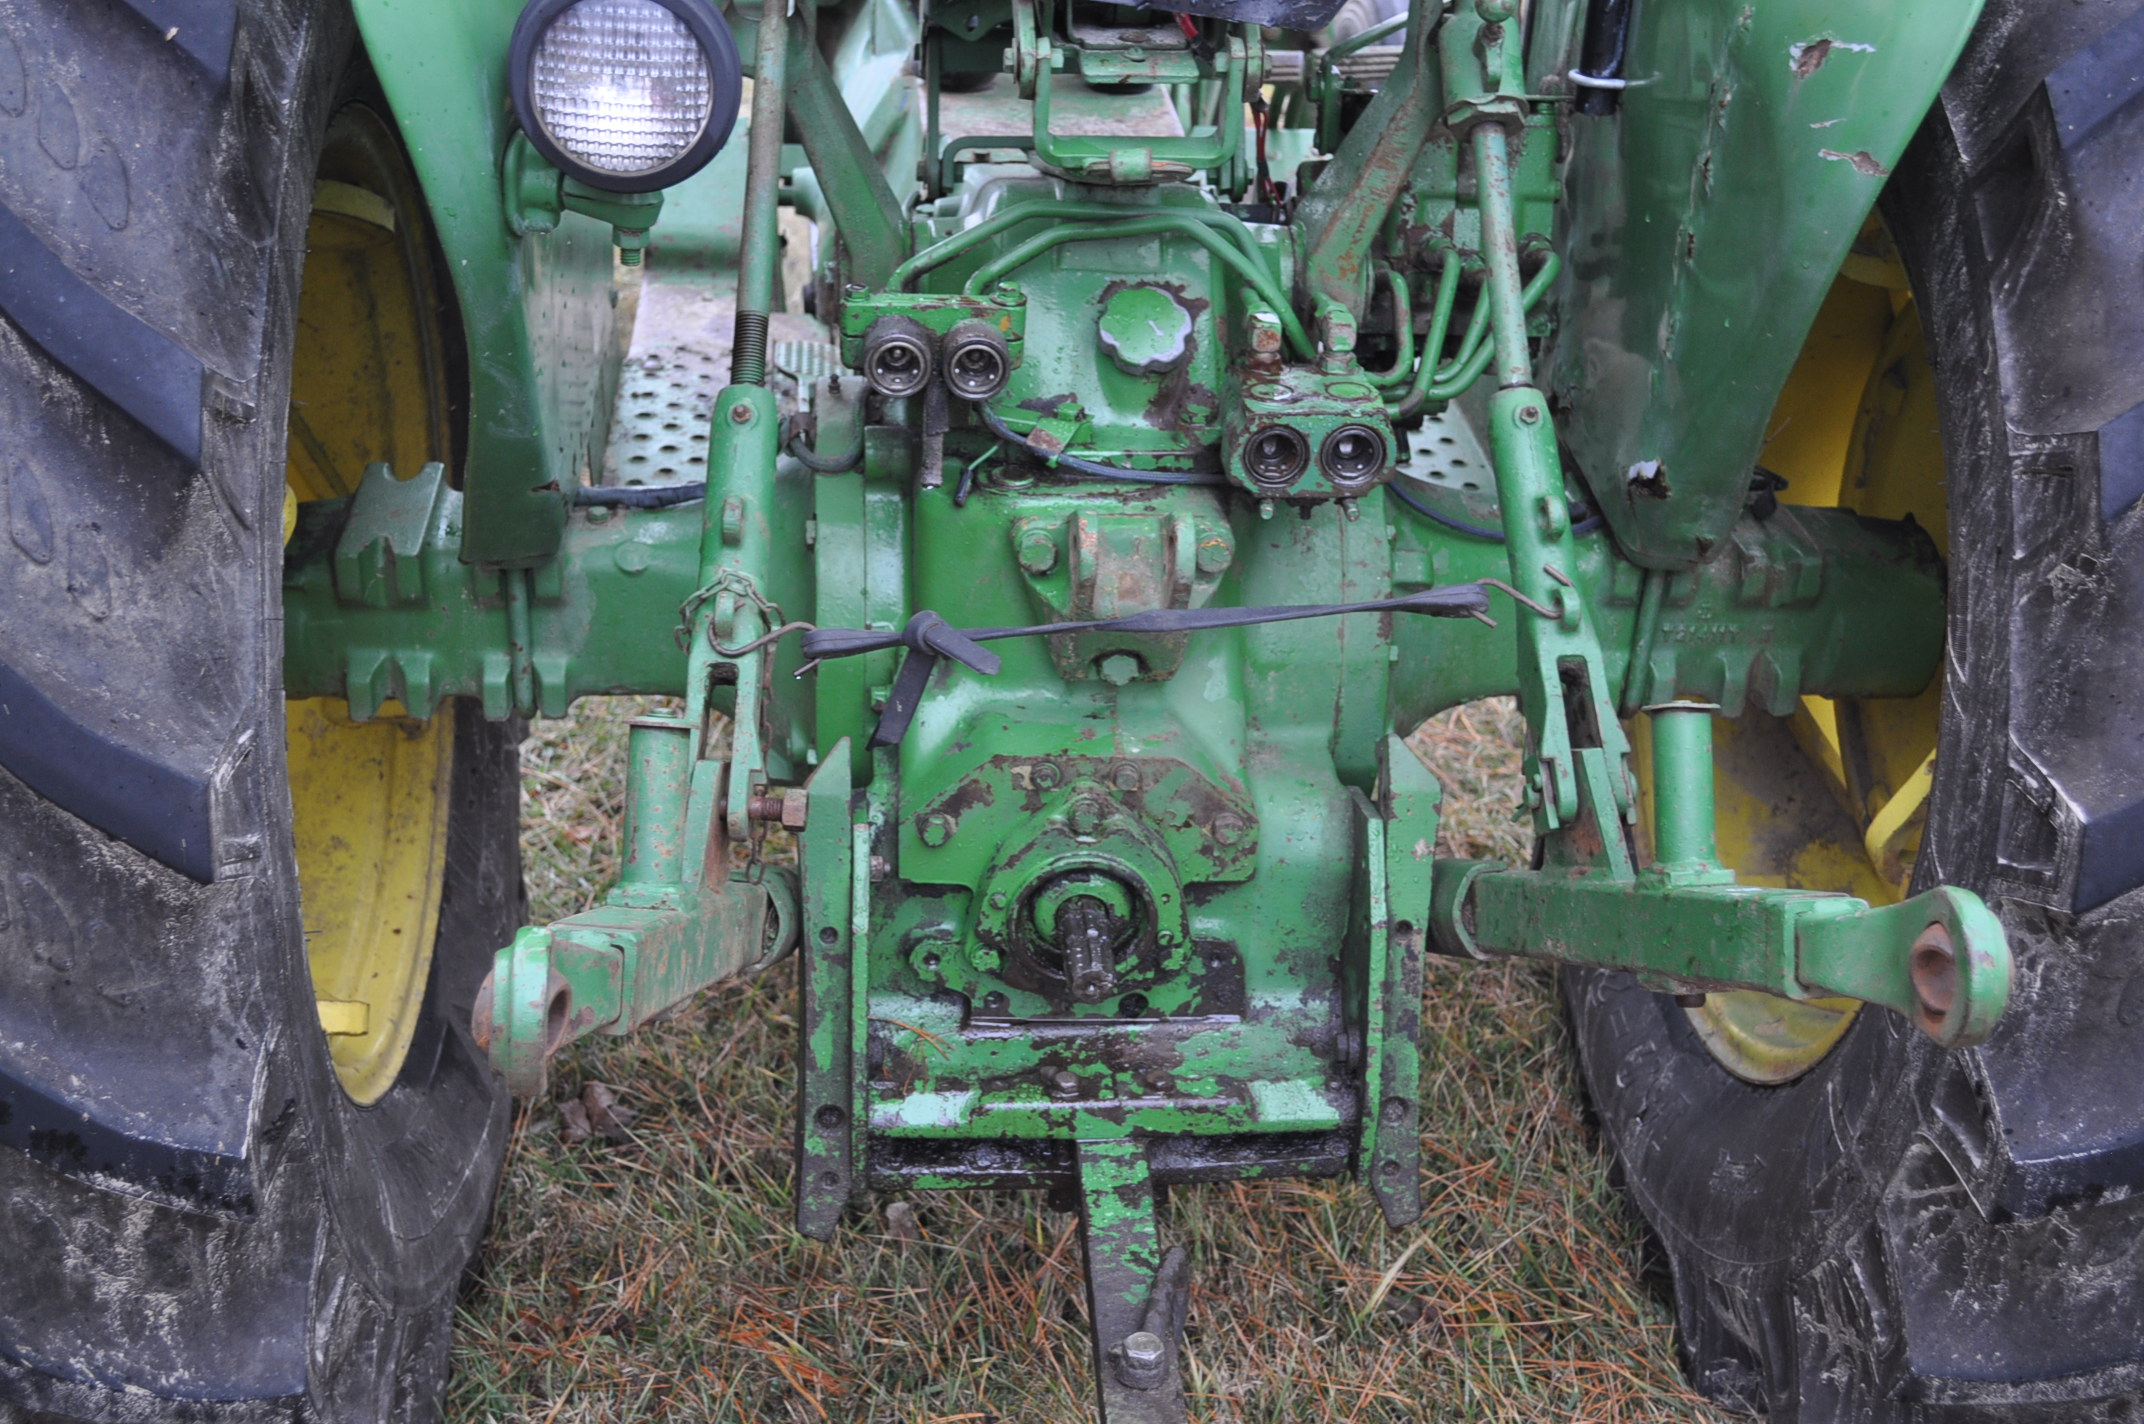 John Deere 2030 tractor, diesel, 16.9-28 rear, 7.5-15 front, canopy, power shuttle, 2 hyd remotes, - Image 13 of 20